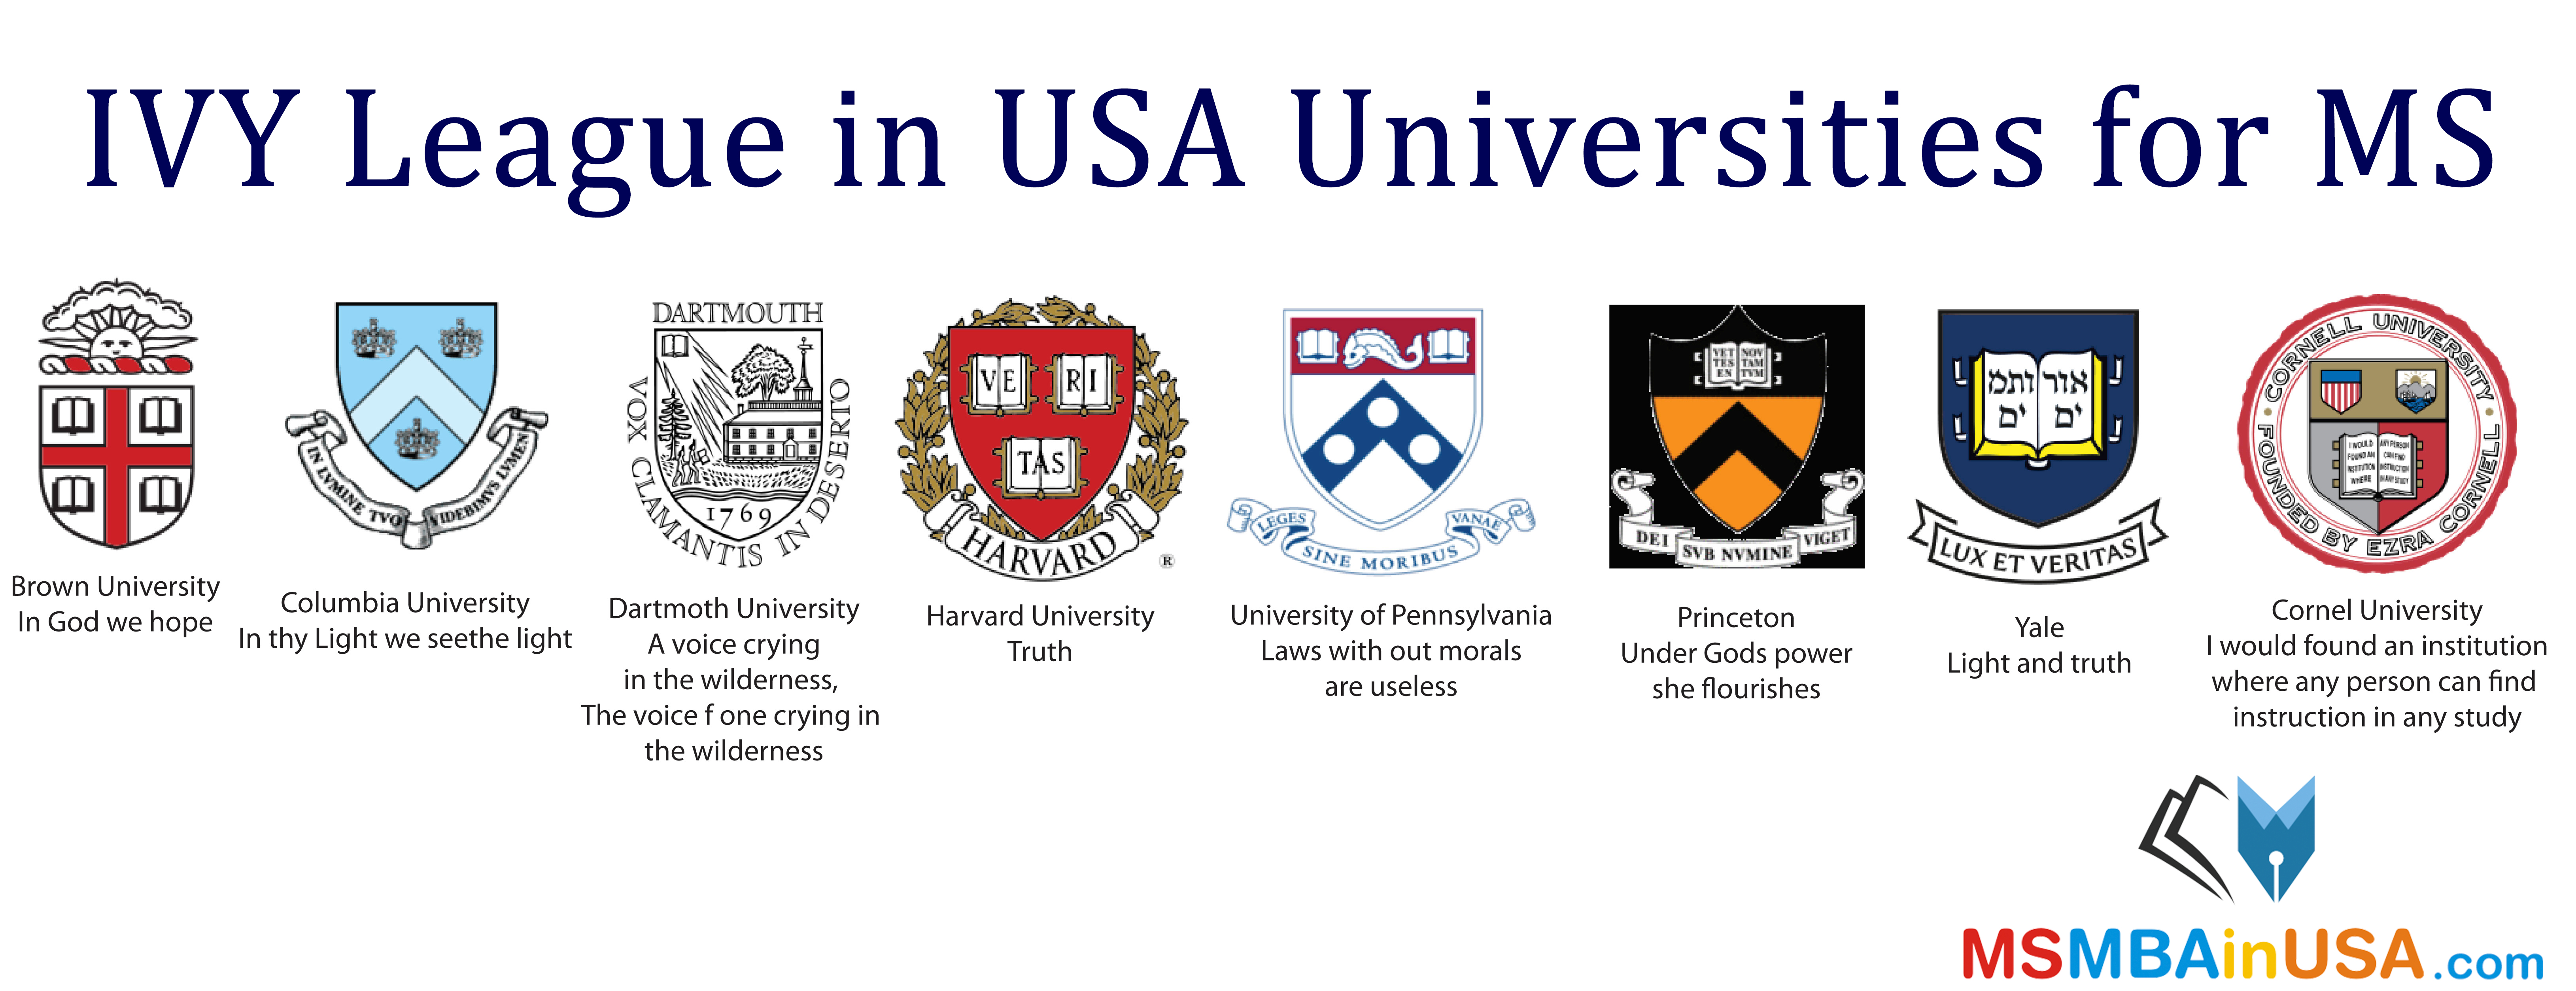 Could I Get Into a High Ranking University Like Stanford or the Ivy League?